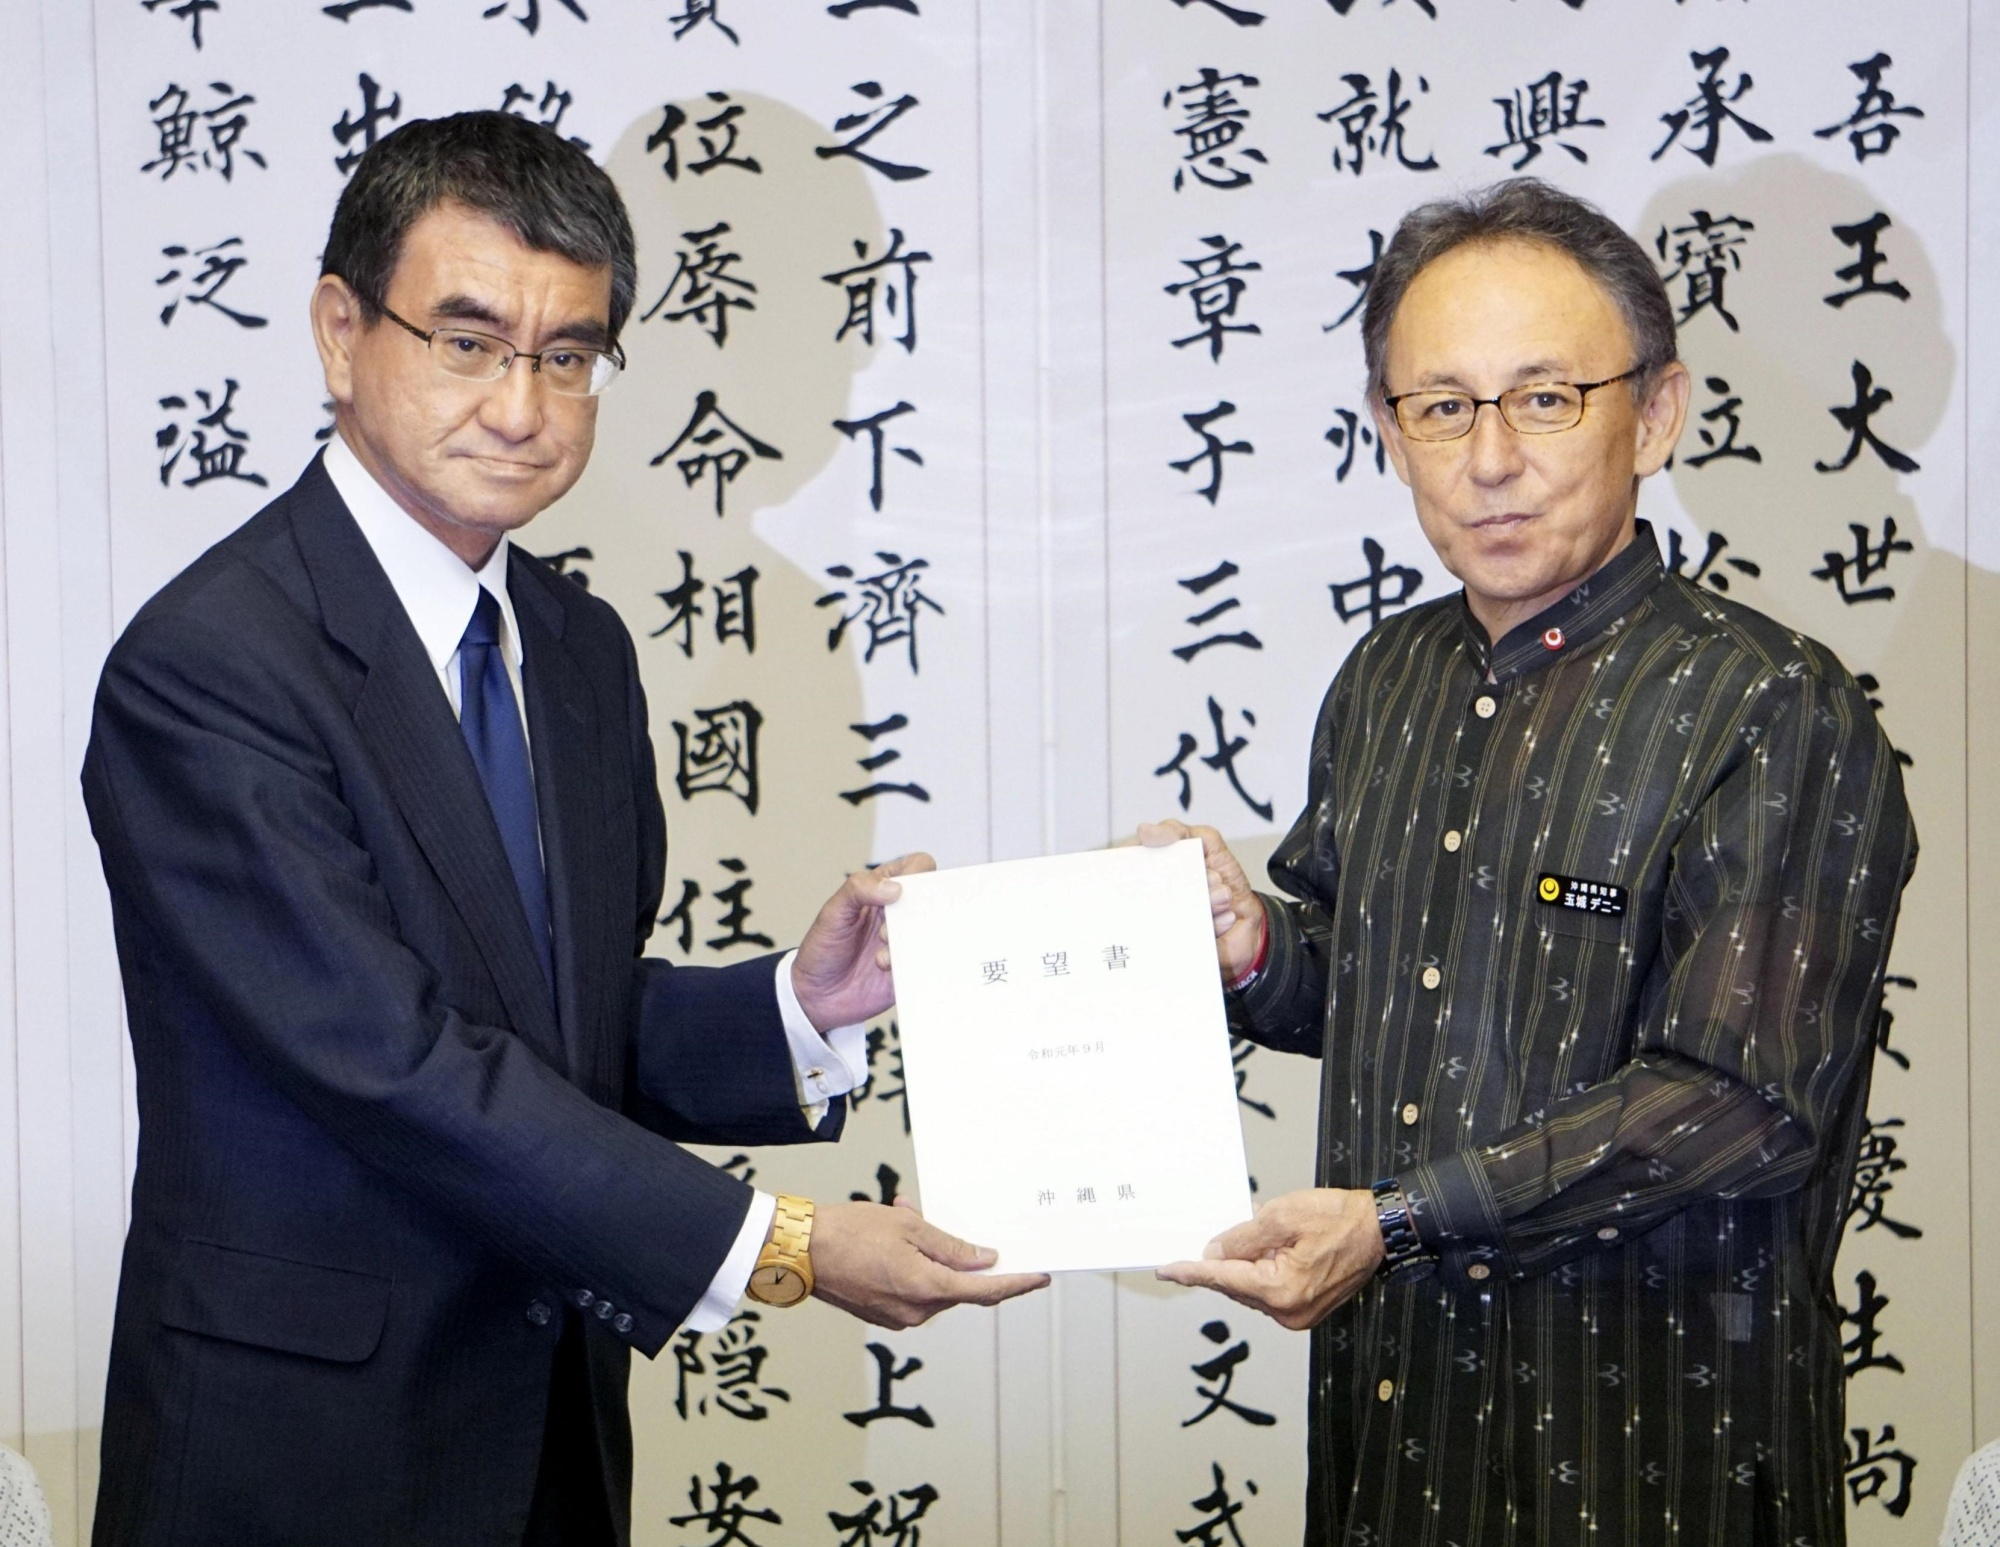 Defense Minister Taro Kono (left) receives a list of demands from Okinawa Gov. Denny Tamaki at the Okinawa Prefectural Government building in Naha on Sunday. | KYODO